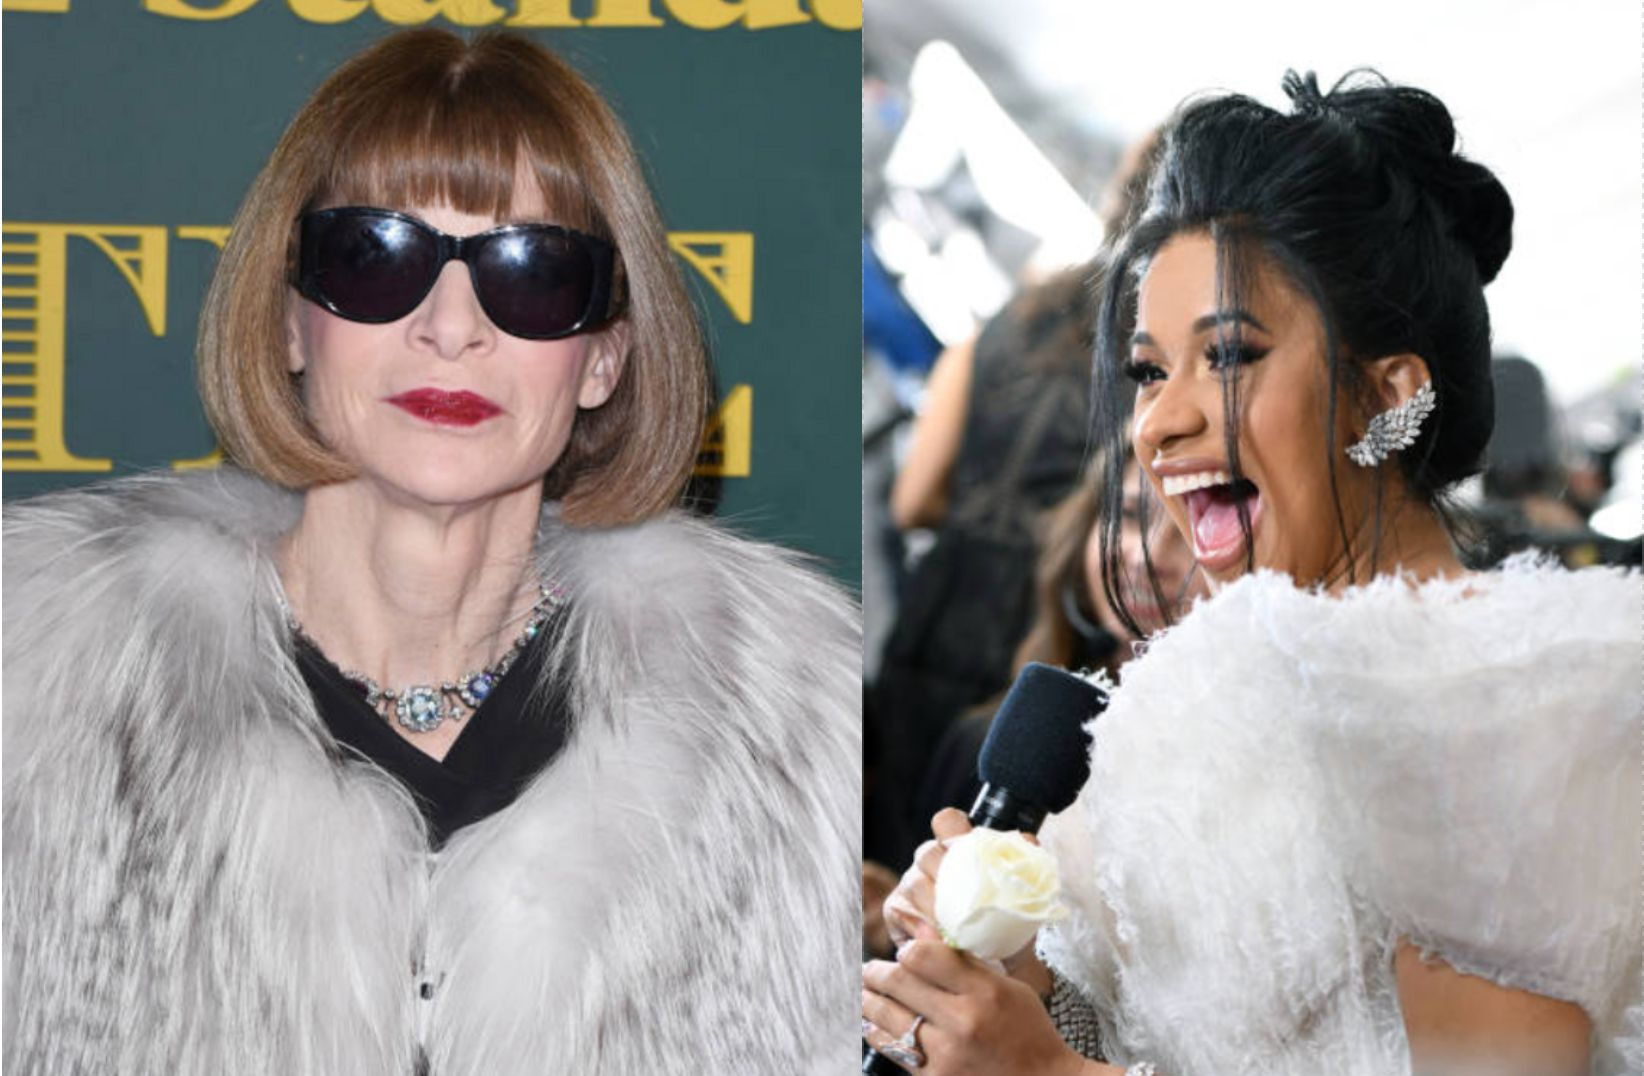 Cardi B May Be One Of The Few People Who Can Actually Make Anna Wintour Smile